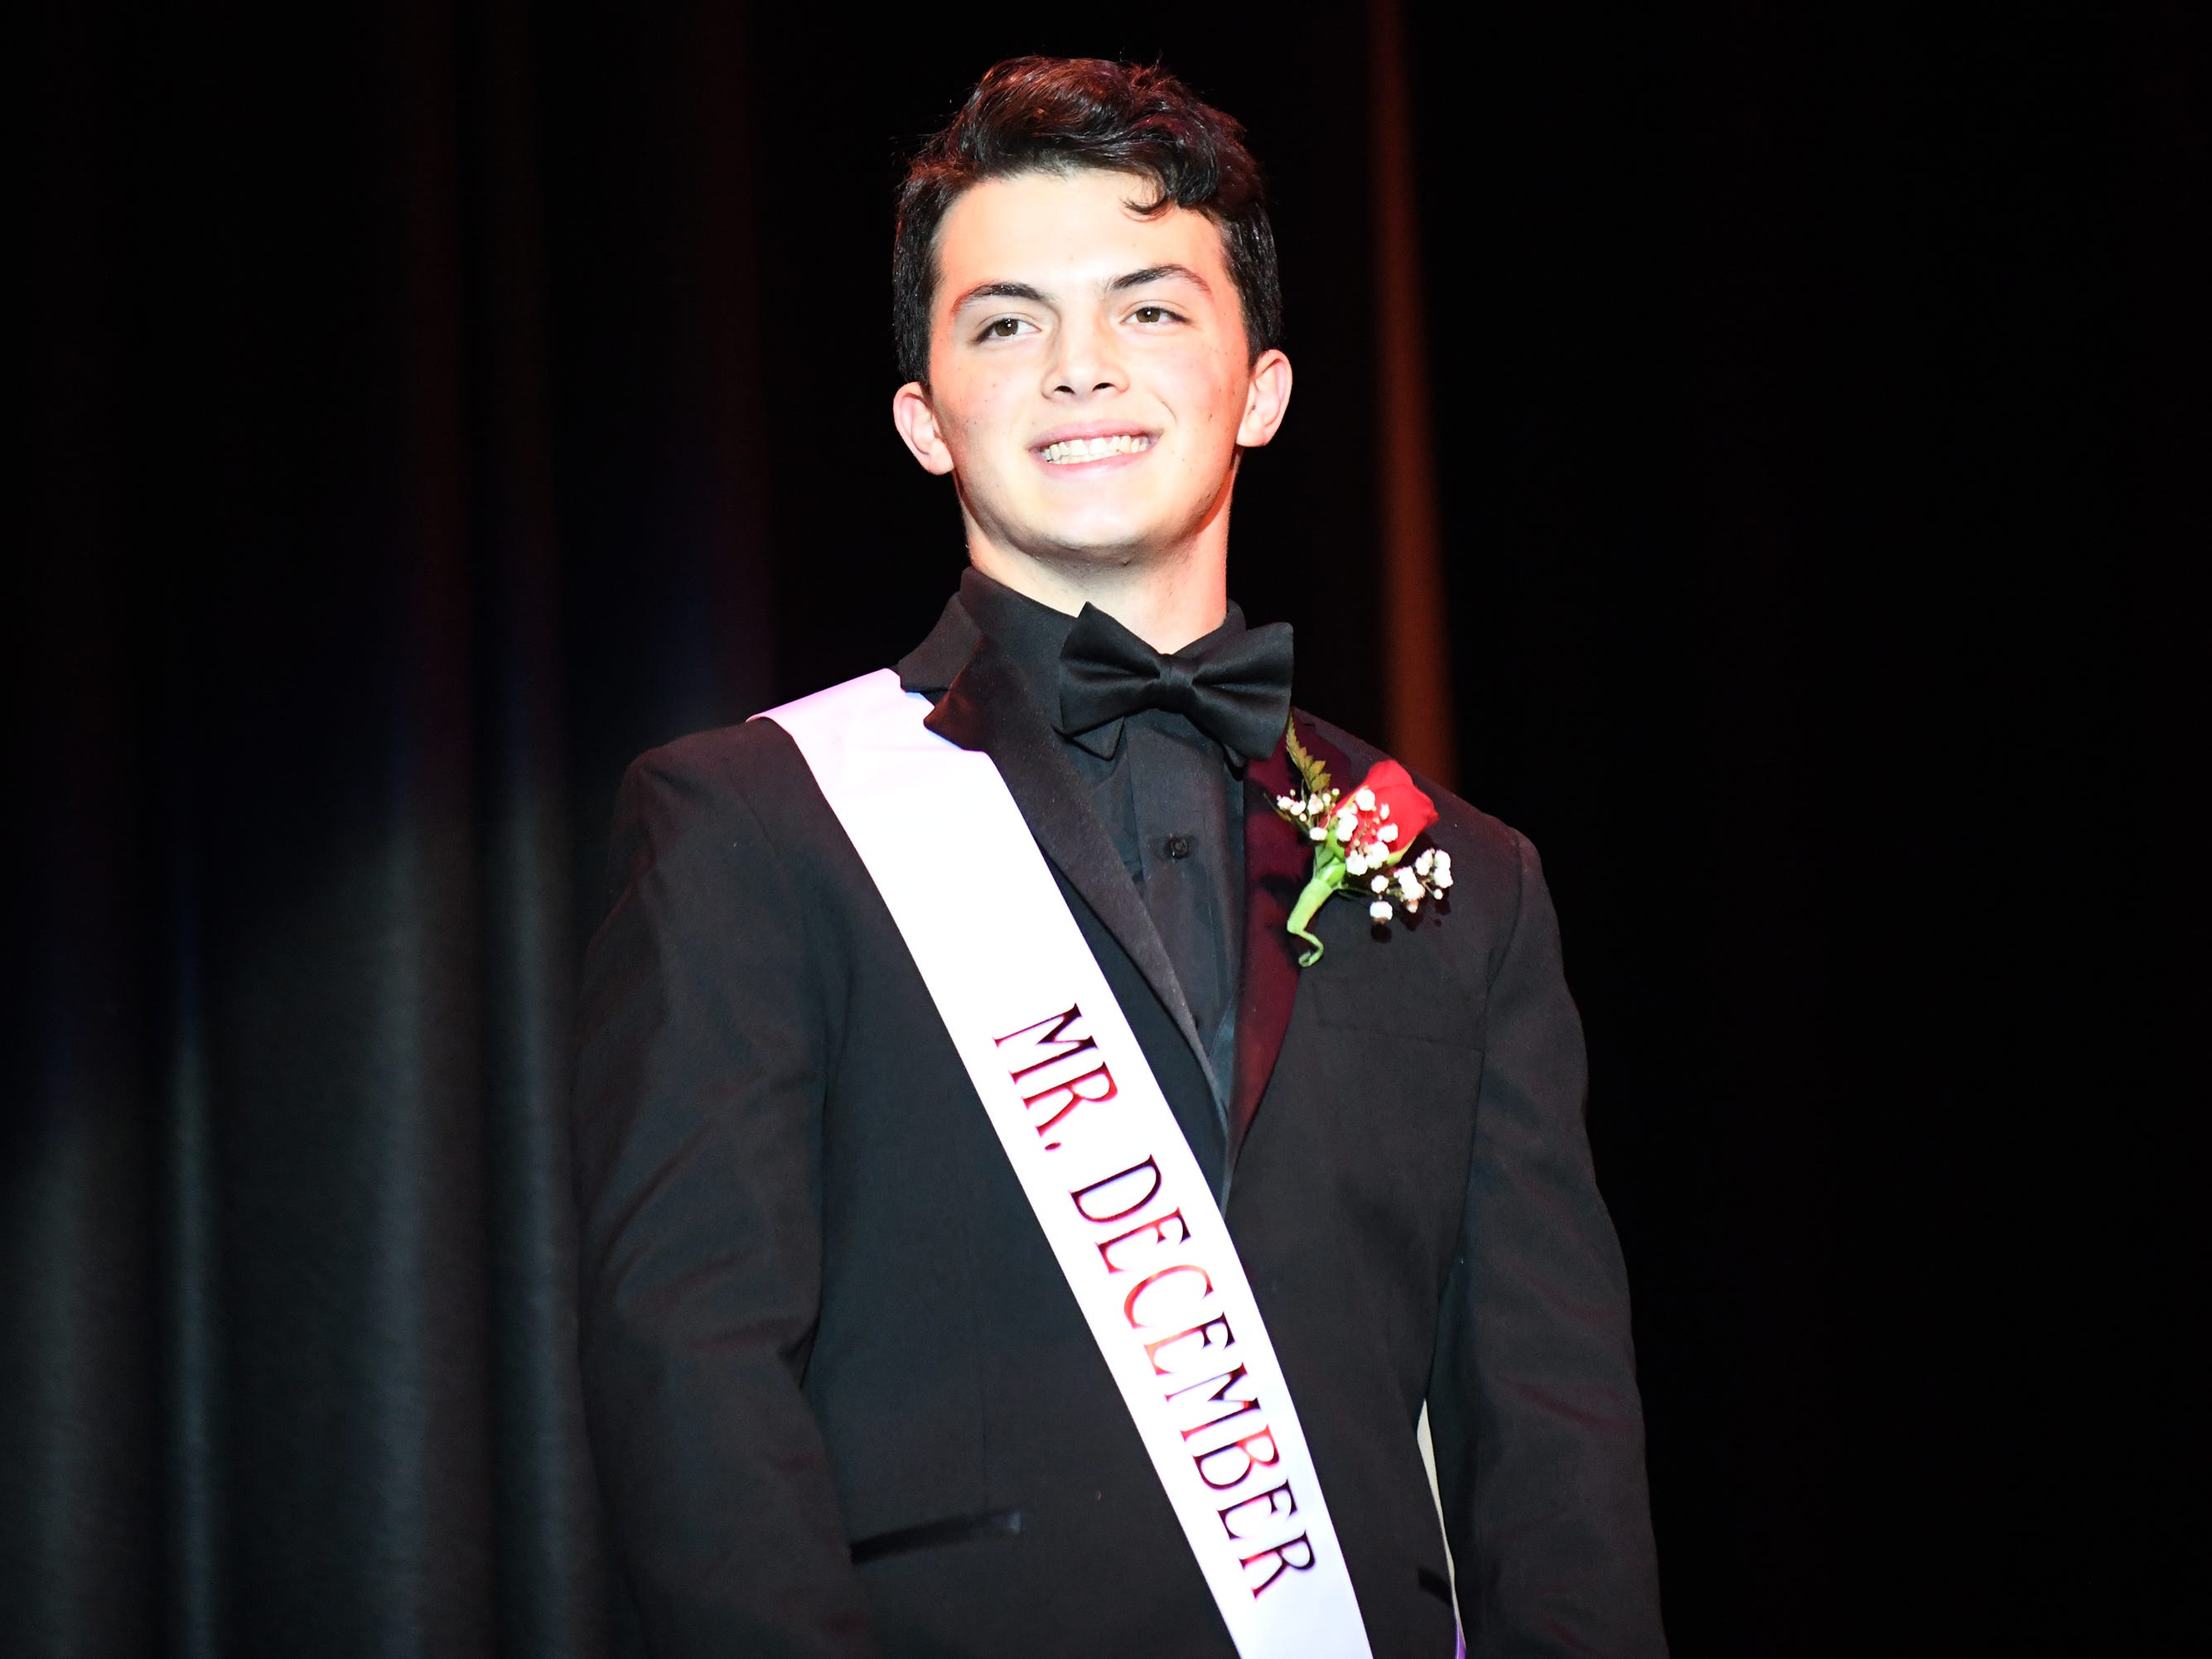 Camron Stahl shows off his formal wear during Mr. Vineland 2019 at Vineland High School on Thursday, January 10.